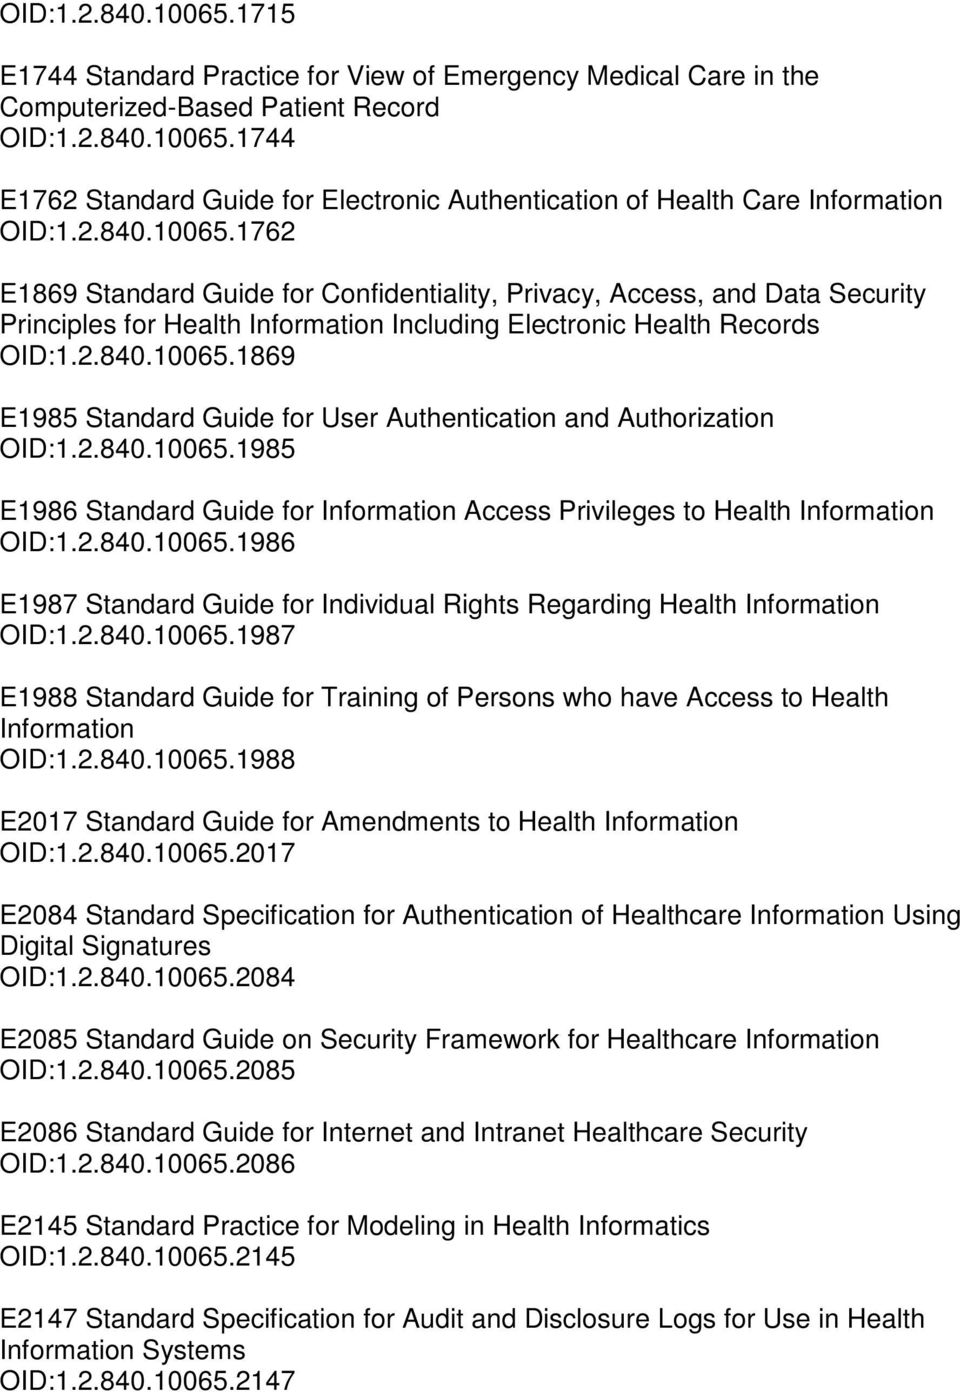 2.840.10065.1985 E1986 Standard Guide for Information Access Privileges to Health Information OID:1.2.840.10065.1986 E1987 Standard Guide for Individual Rights Regarding Health Information OID:1.2.840.10065.1987 E1988 Standard Guide for Training of Persons who have Access to Health Information OID:1.